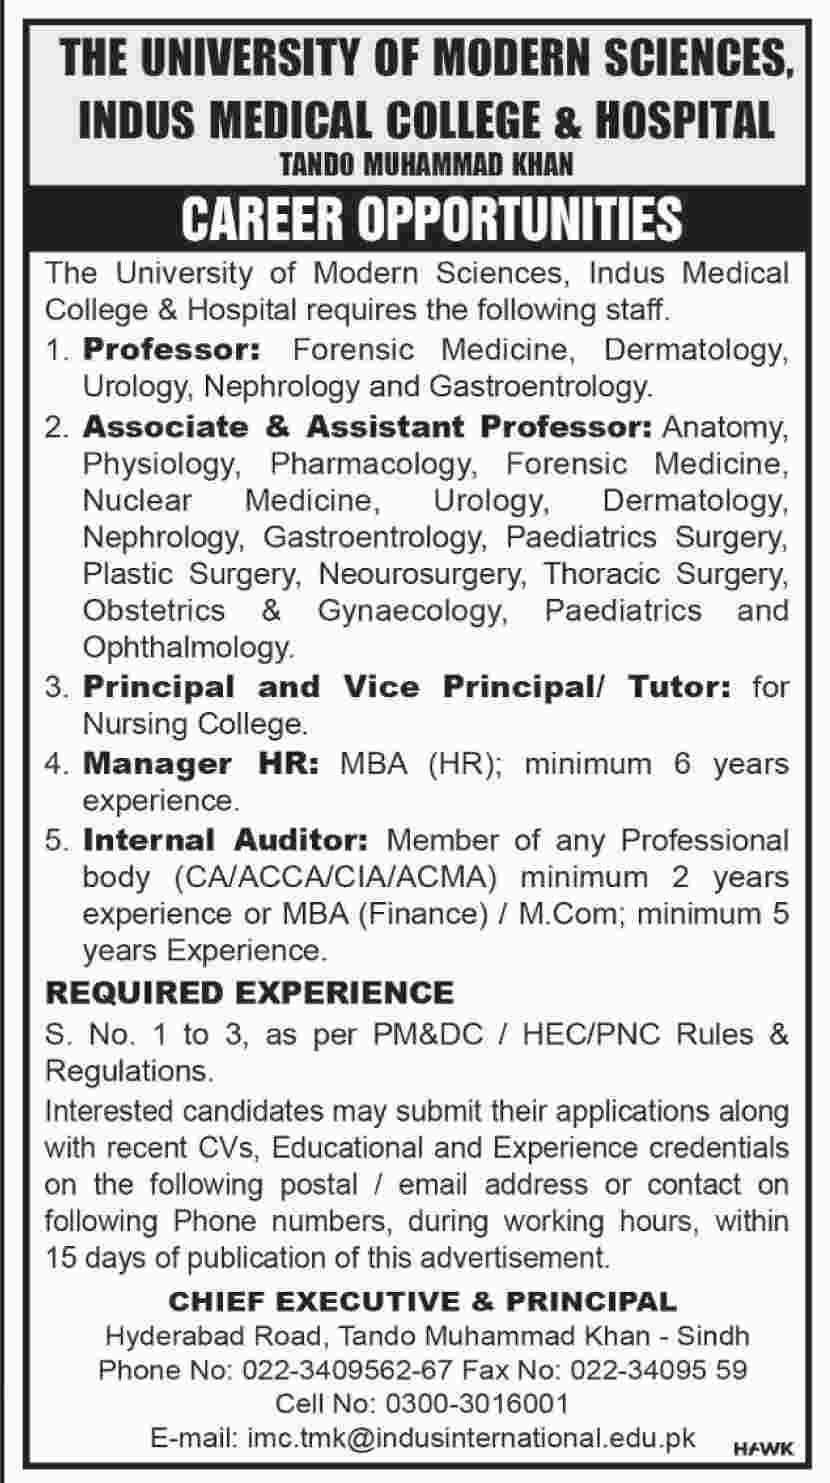 Jobs in Indus Medical College & Hospital Tando Mohammad Khan